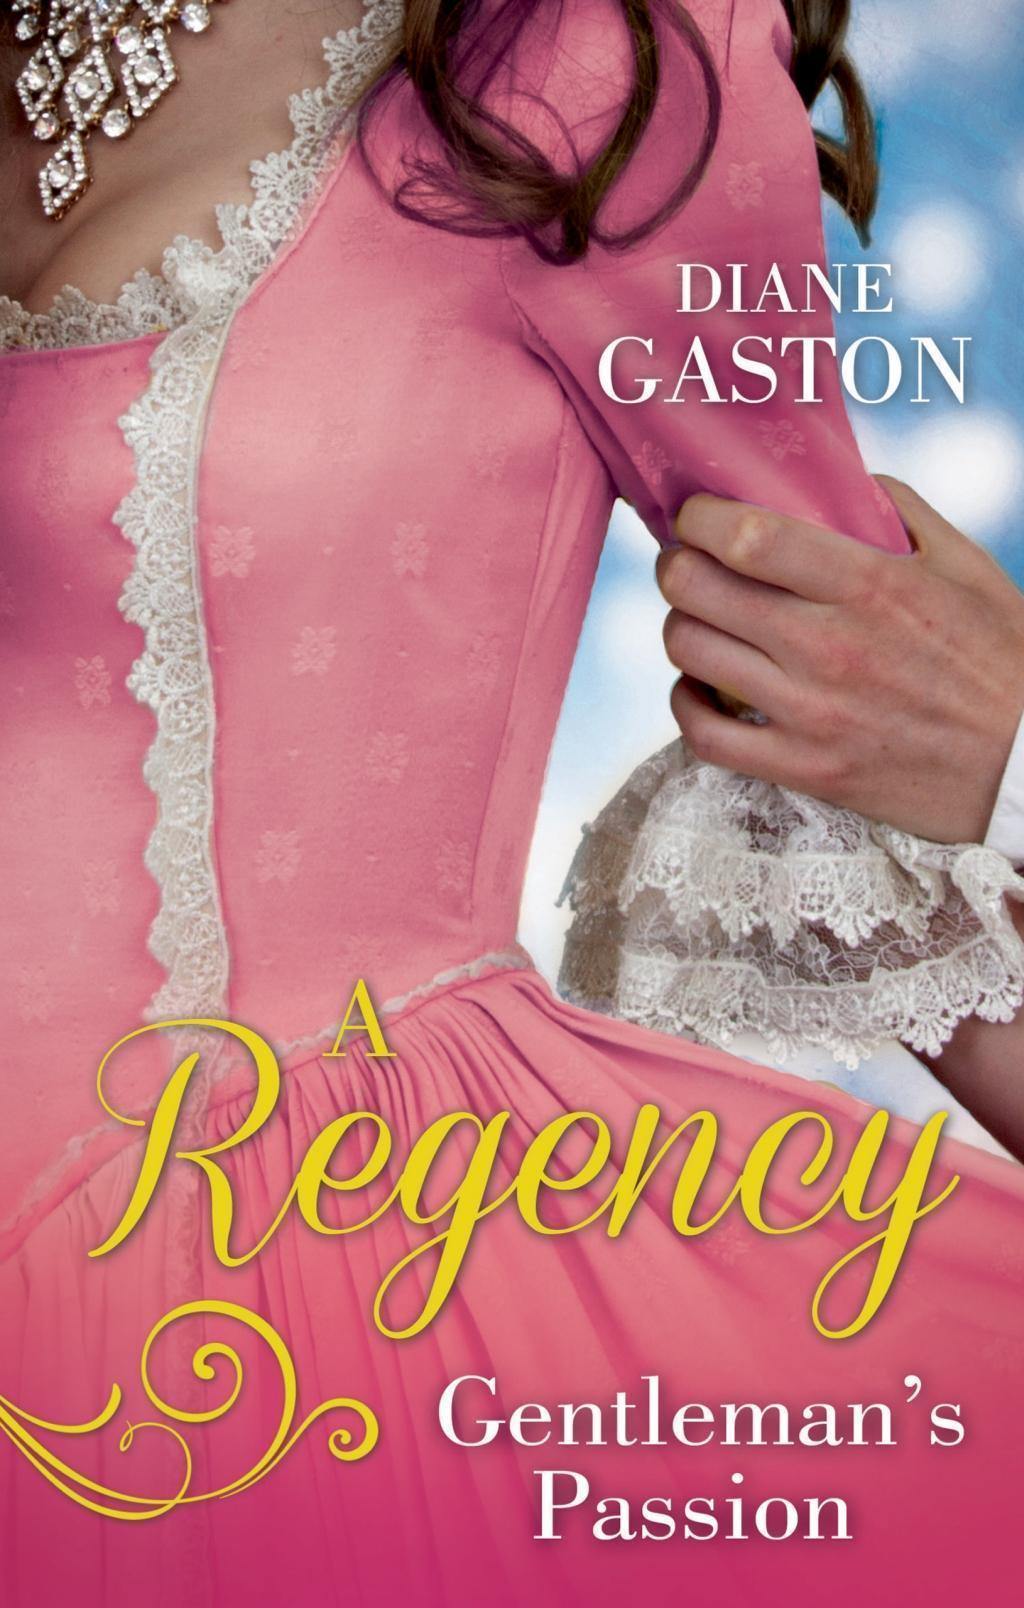 A Regency Gentleman's Passion: Valiant Soldier, Beautiful Enemy / A Not So Respectable Gentleman? (Mills & Boon M&B)